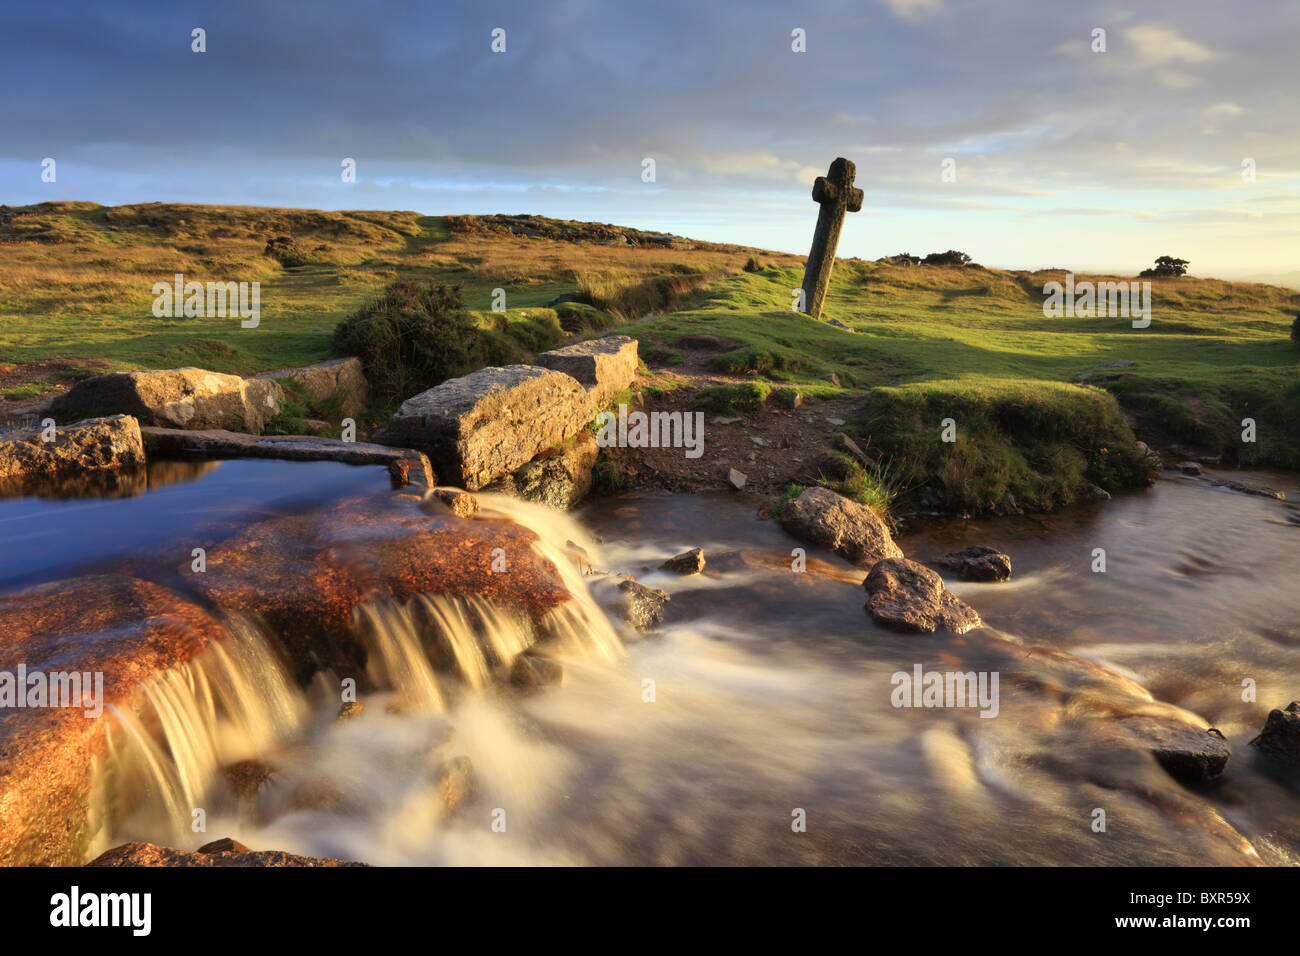 Windy Post Cross in the Dartmoor National Park, Devon - Stock Image